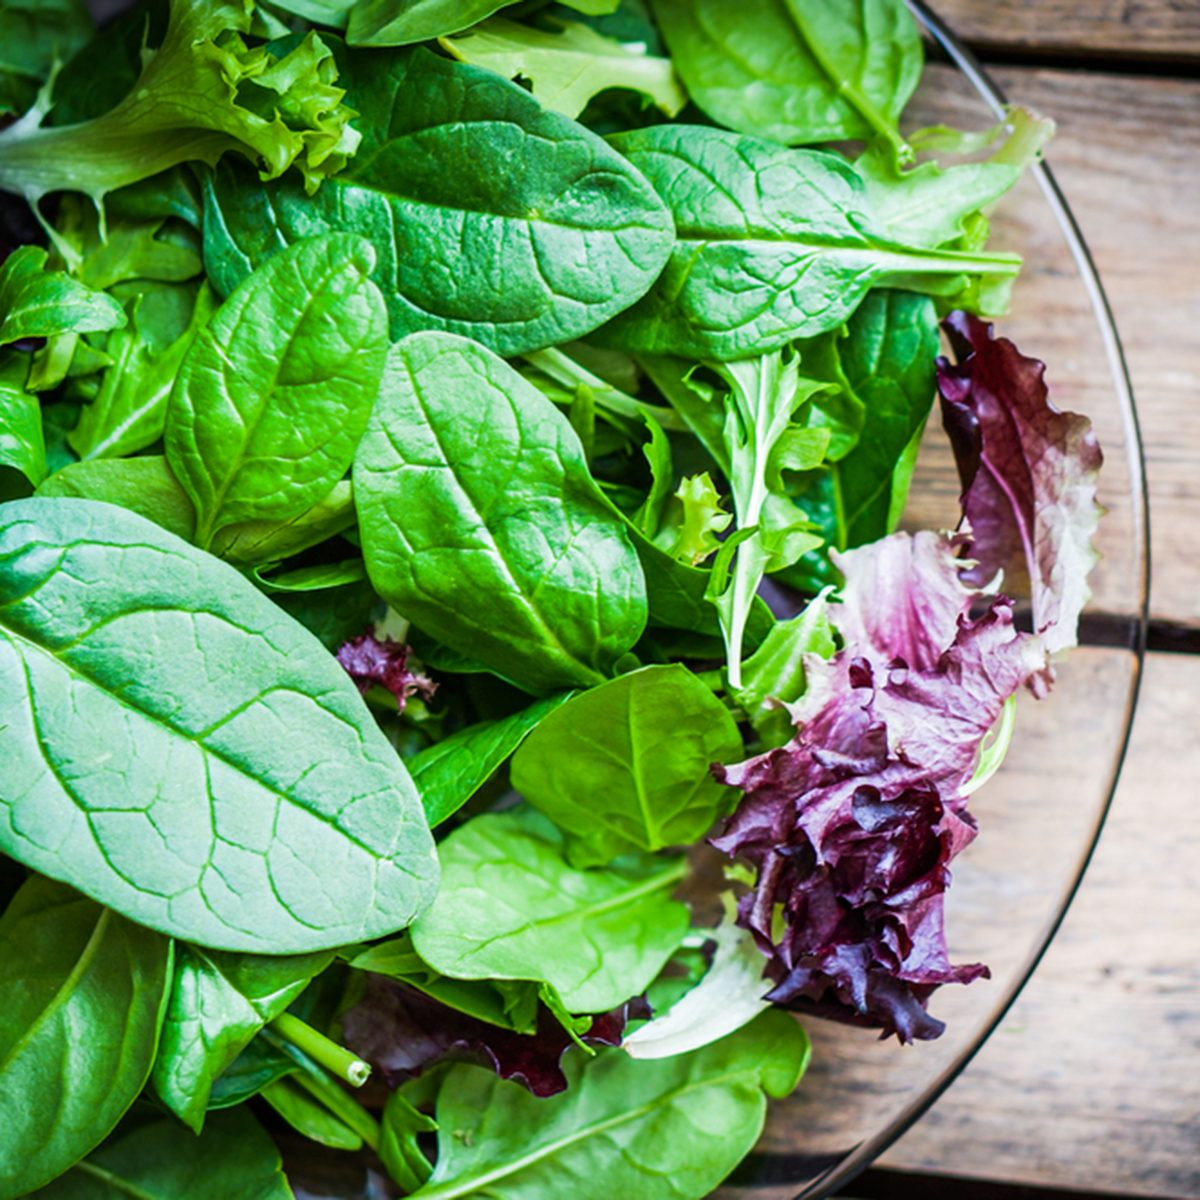 Fresh green salad with spinach,arugula,romaine and lettuce